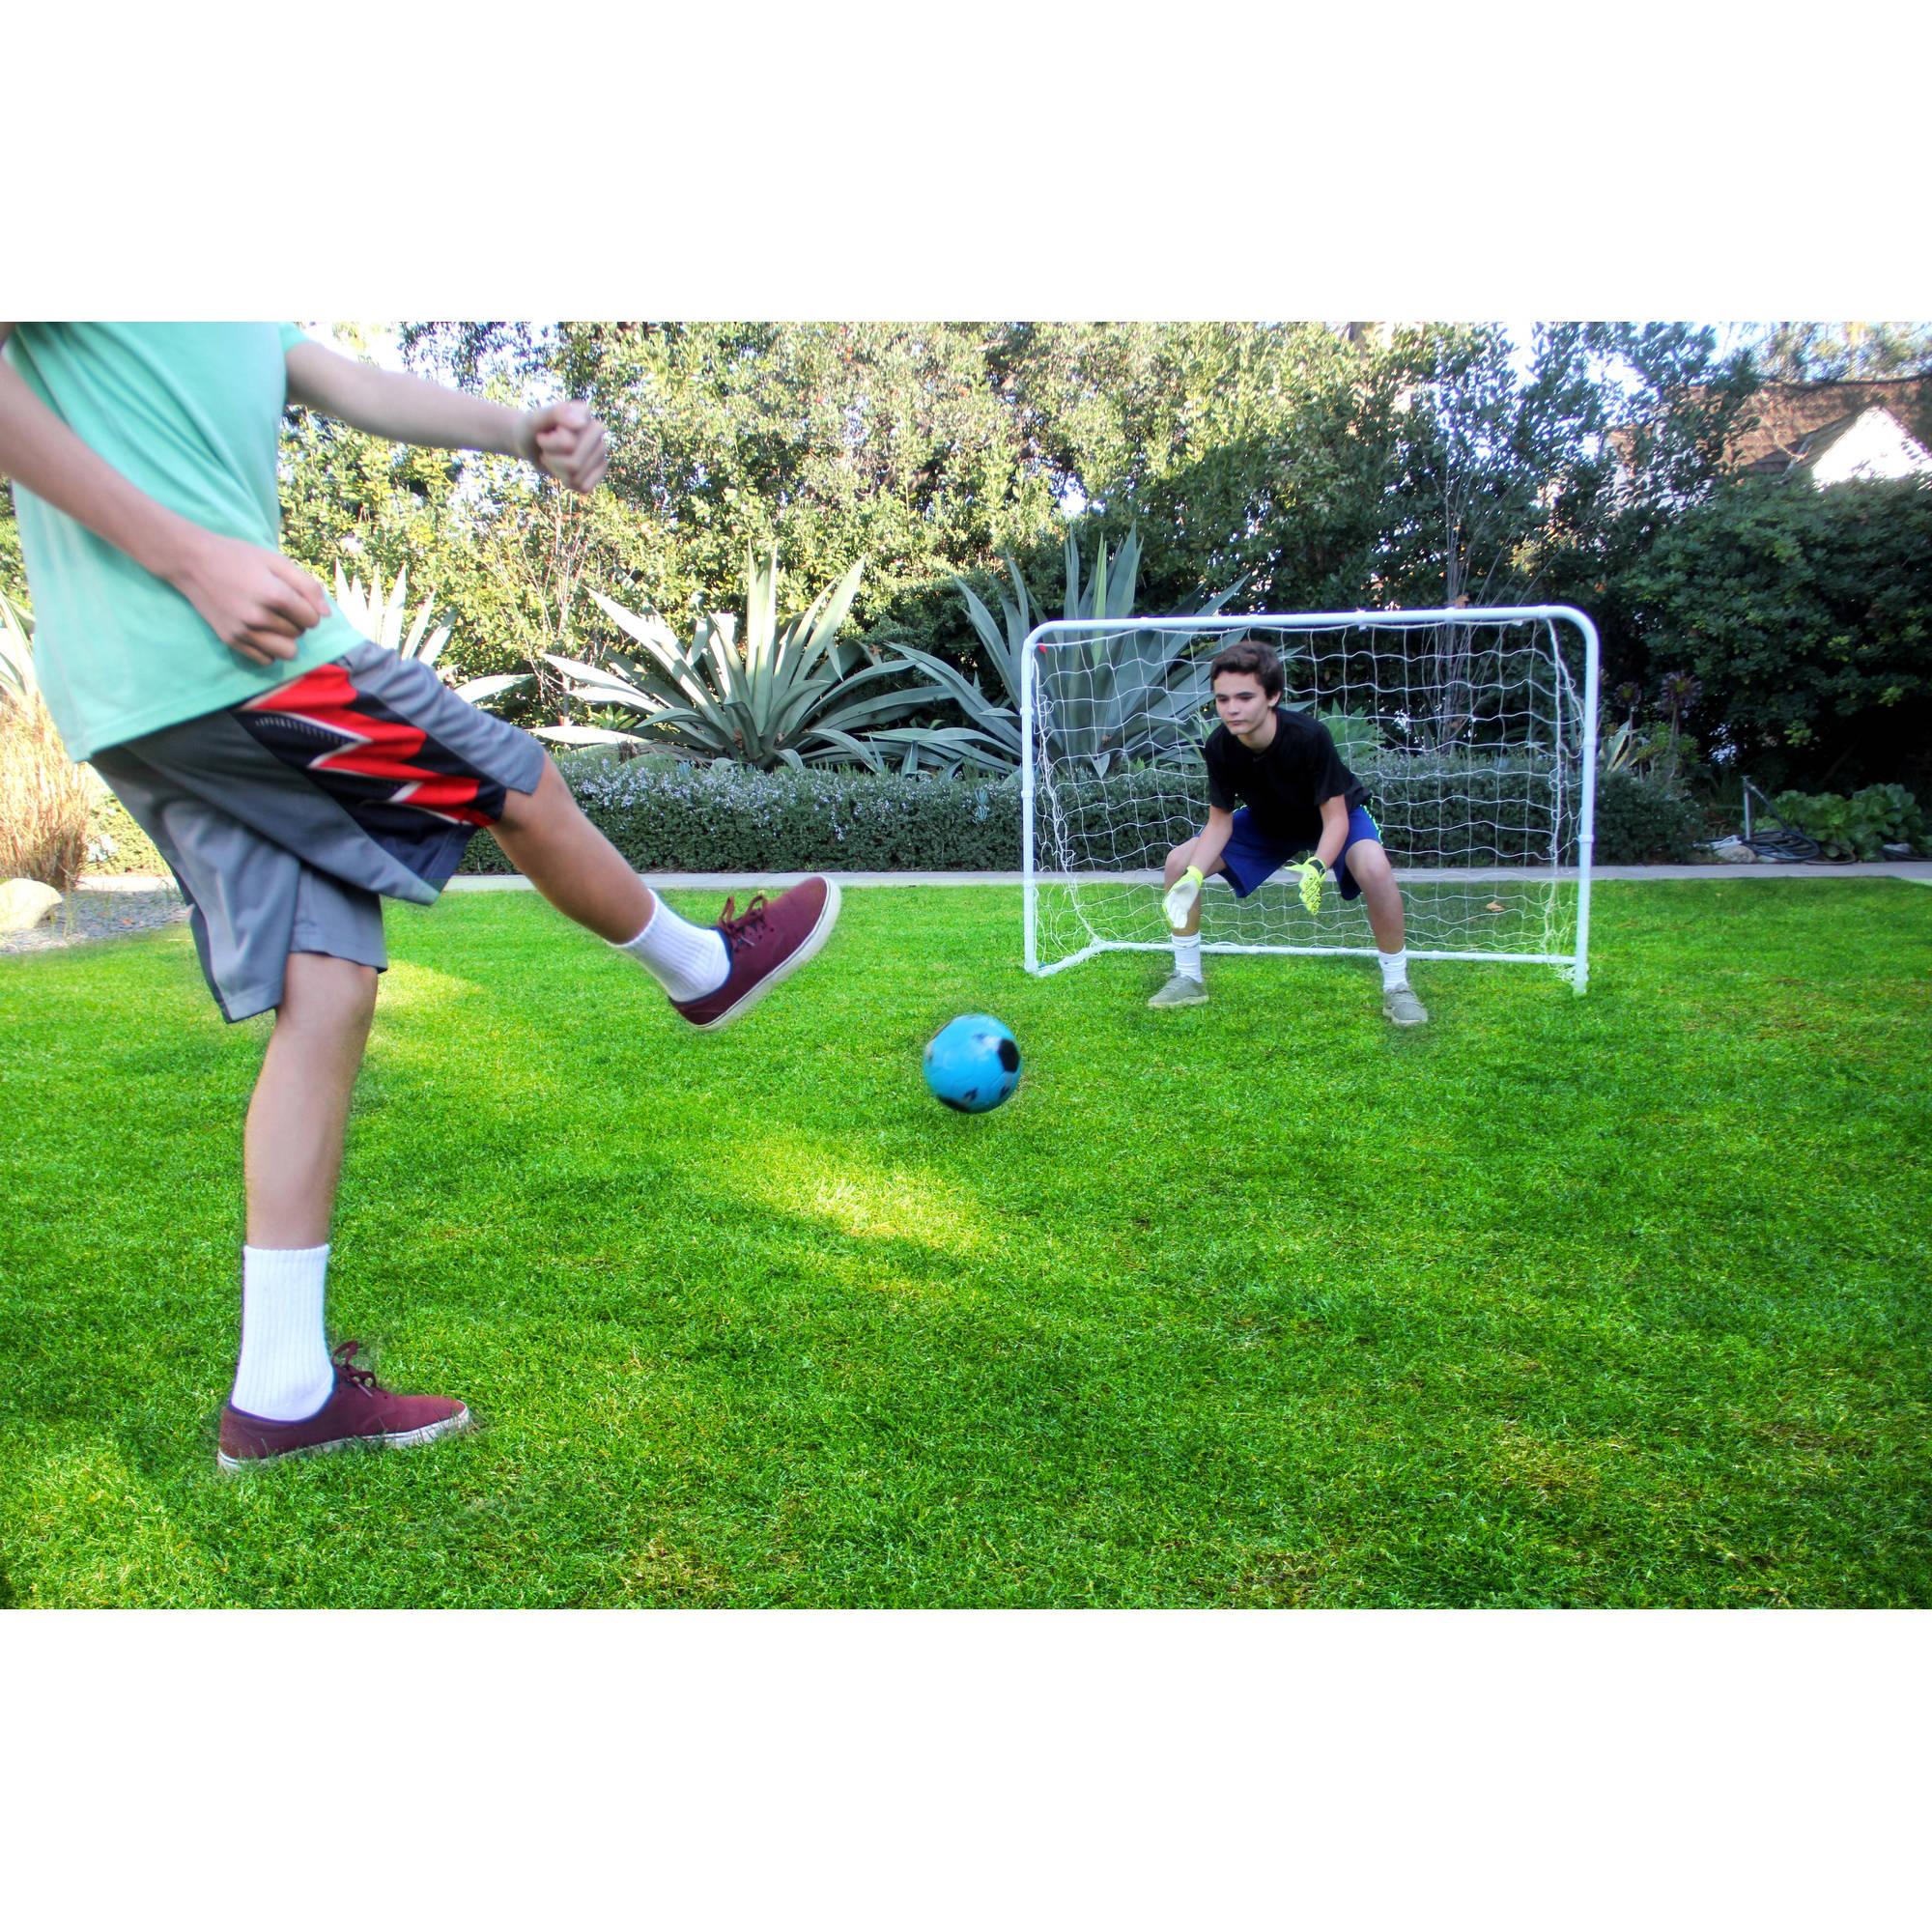 Athletic Works 6' x 4 Junior Soccer Goal for Kids ( Includes Velcro Straps)